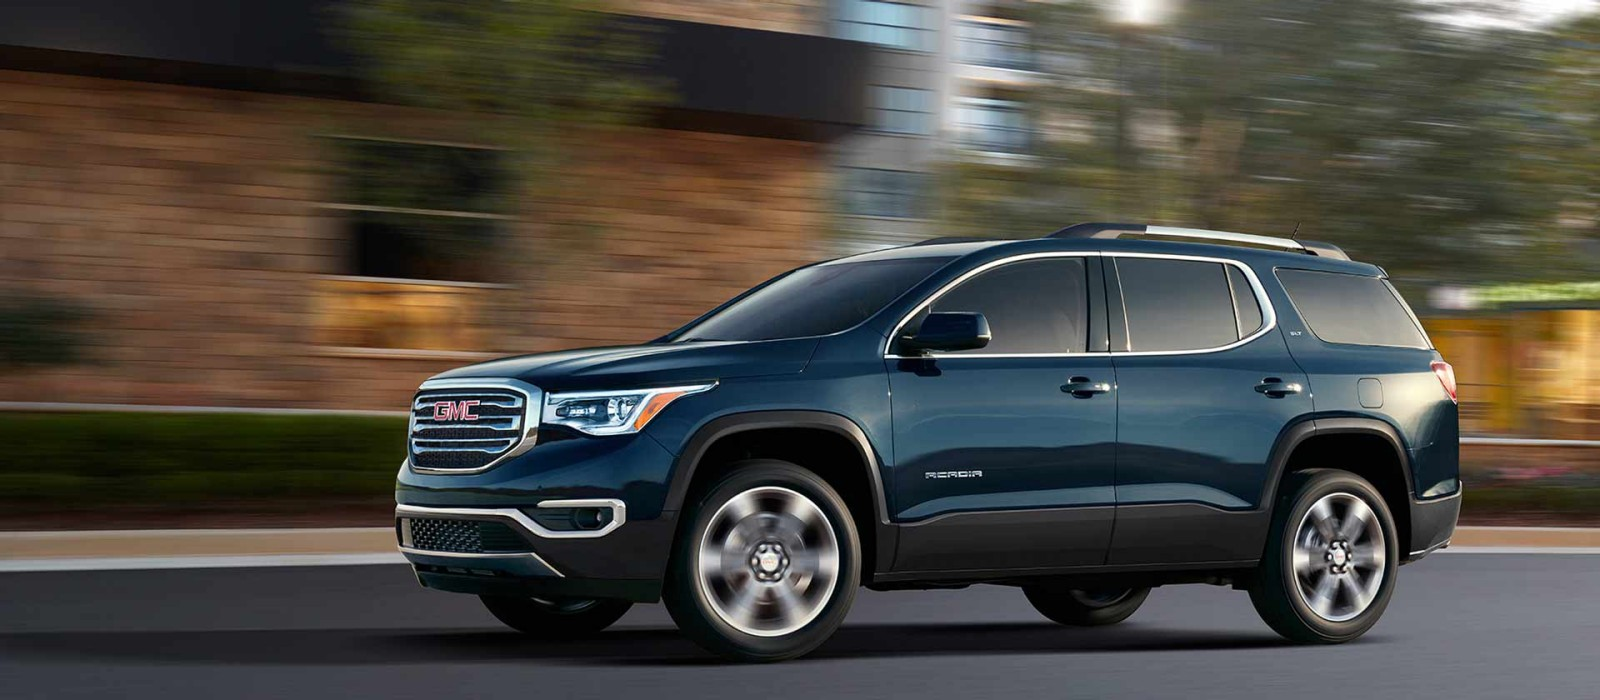 Learn How to Achieve Maximum Towing Capacity with the New GMC Acadia